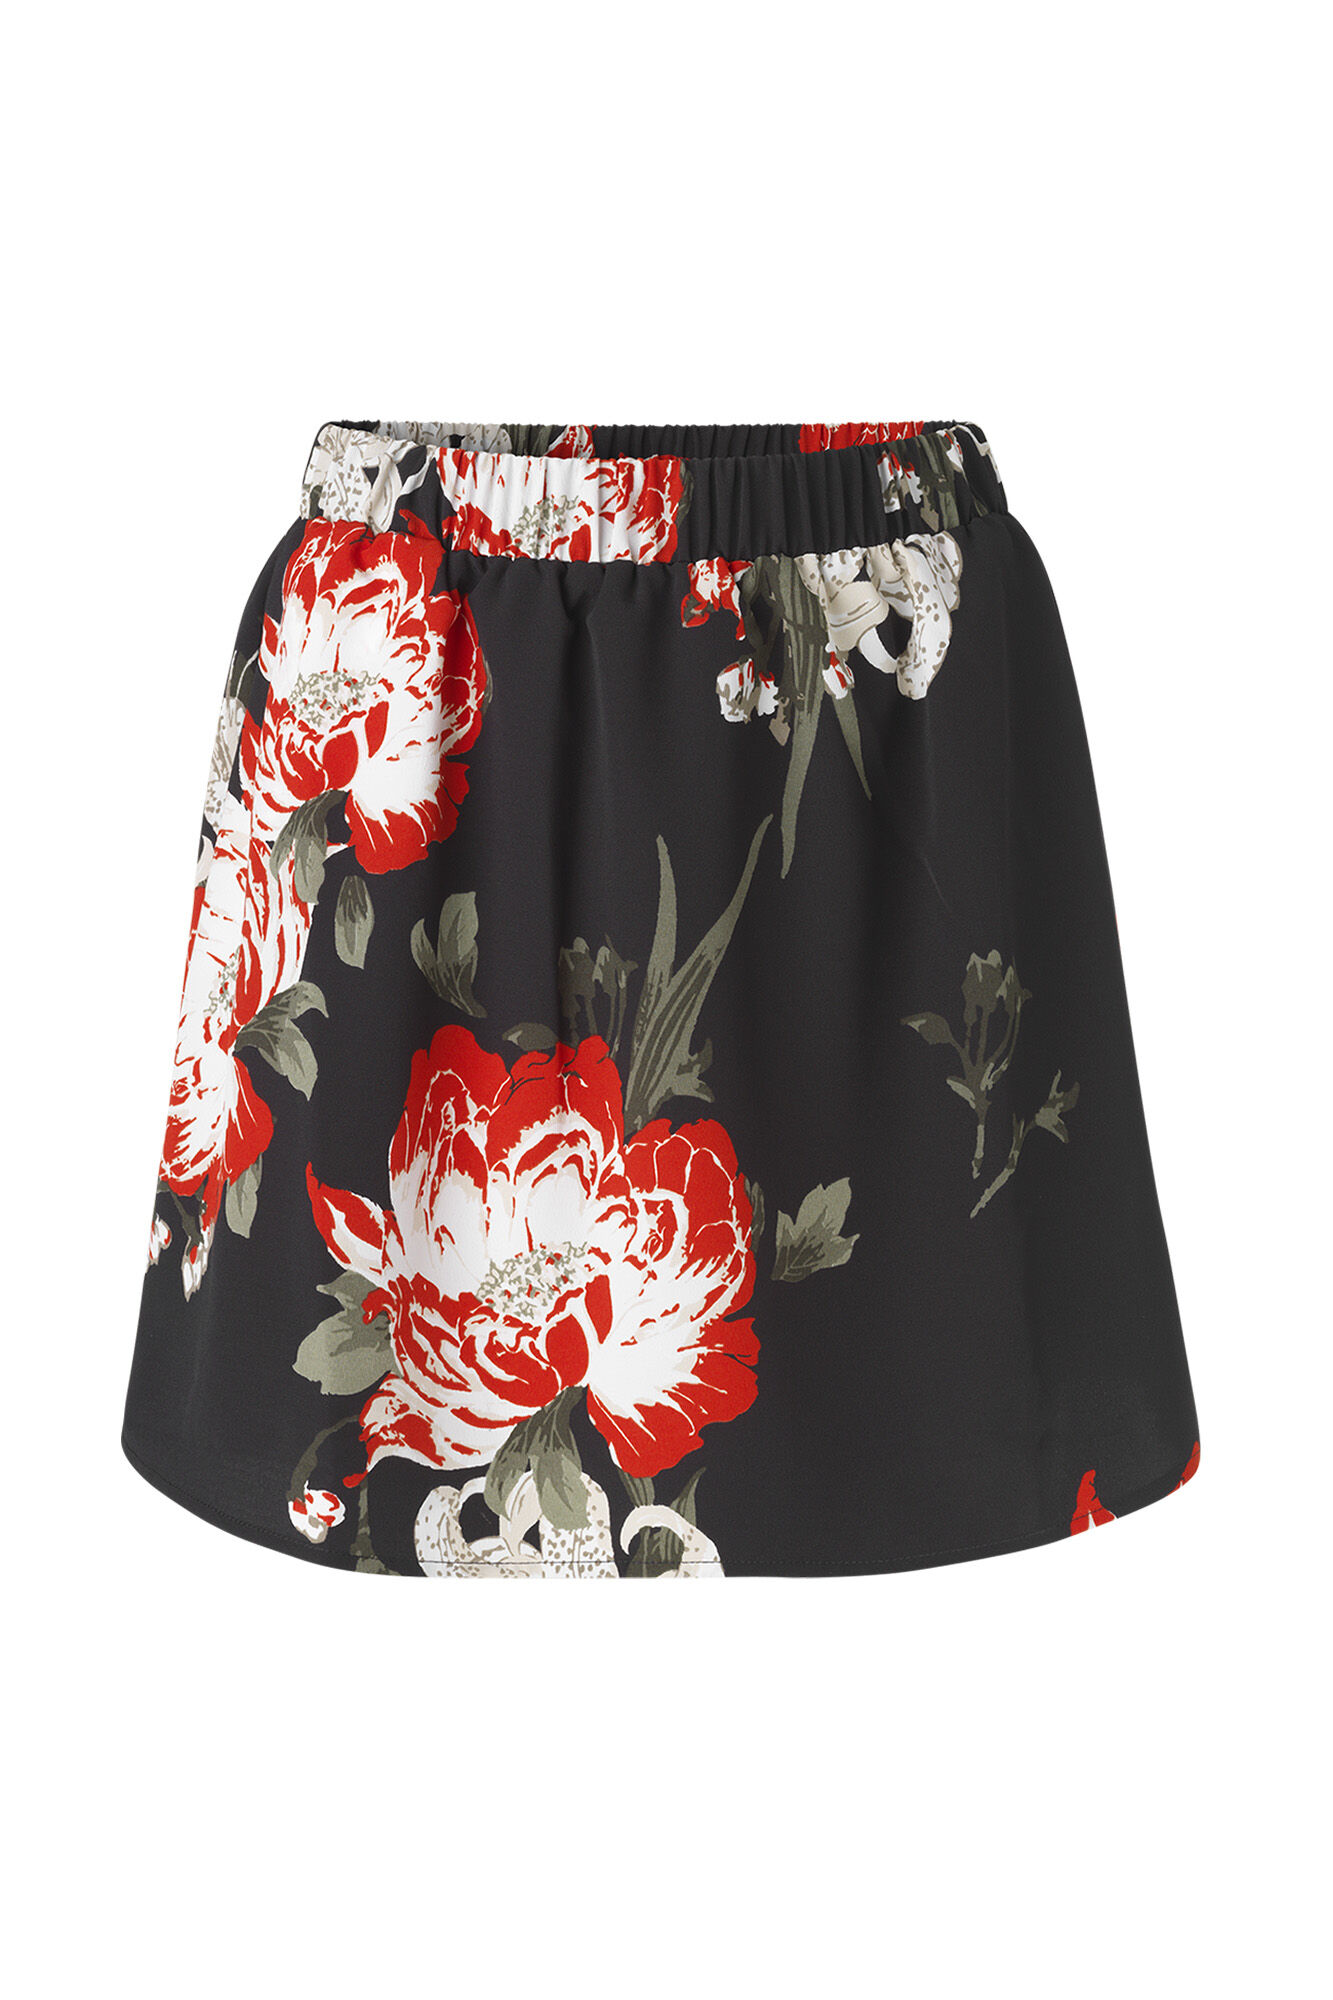 ENJUSTICE SKIRT AOP 6460, PUA DARK AOP